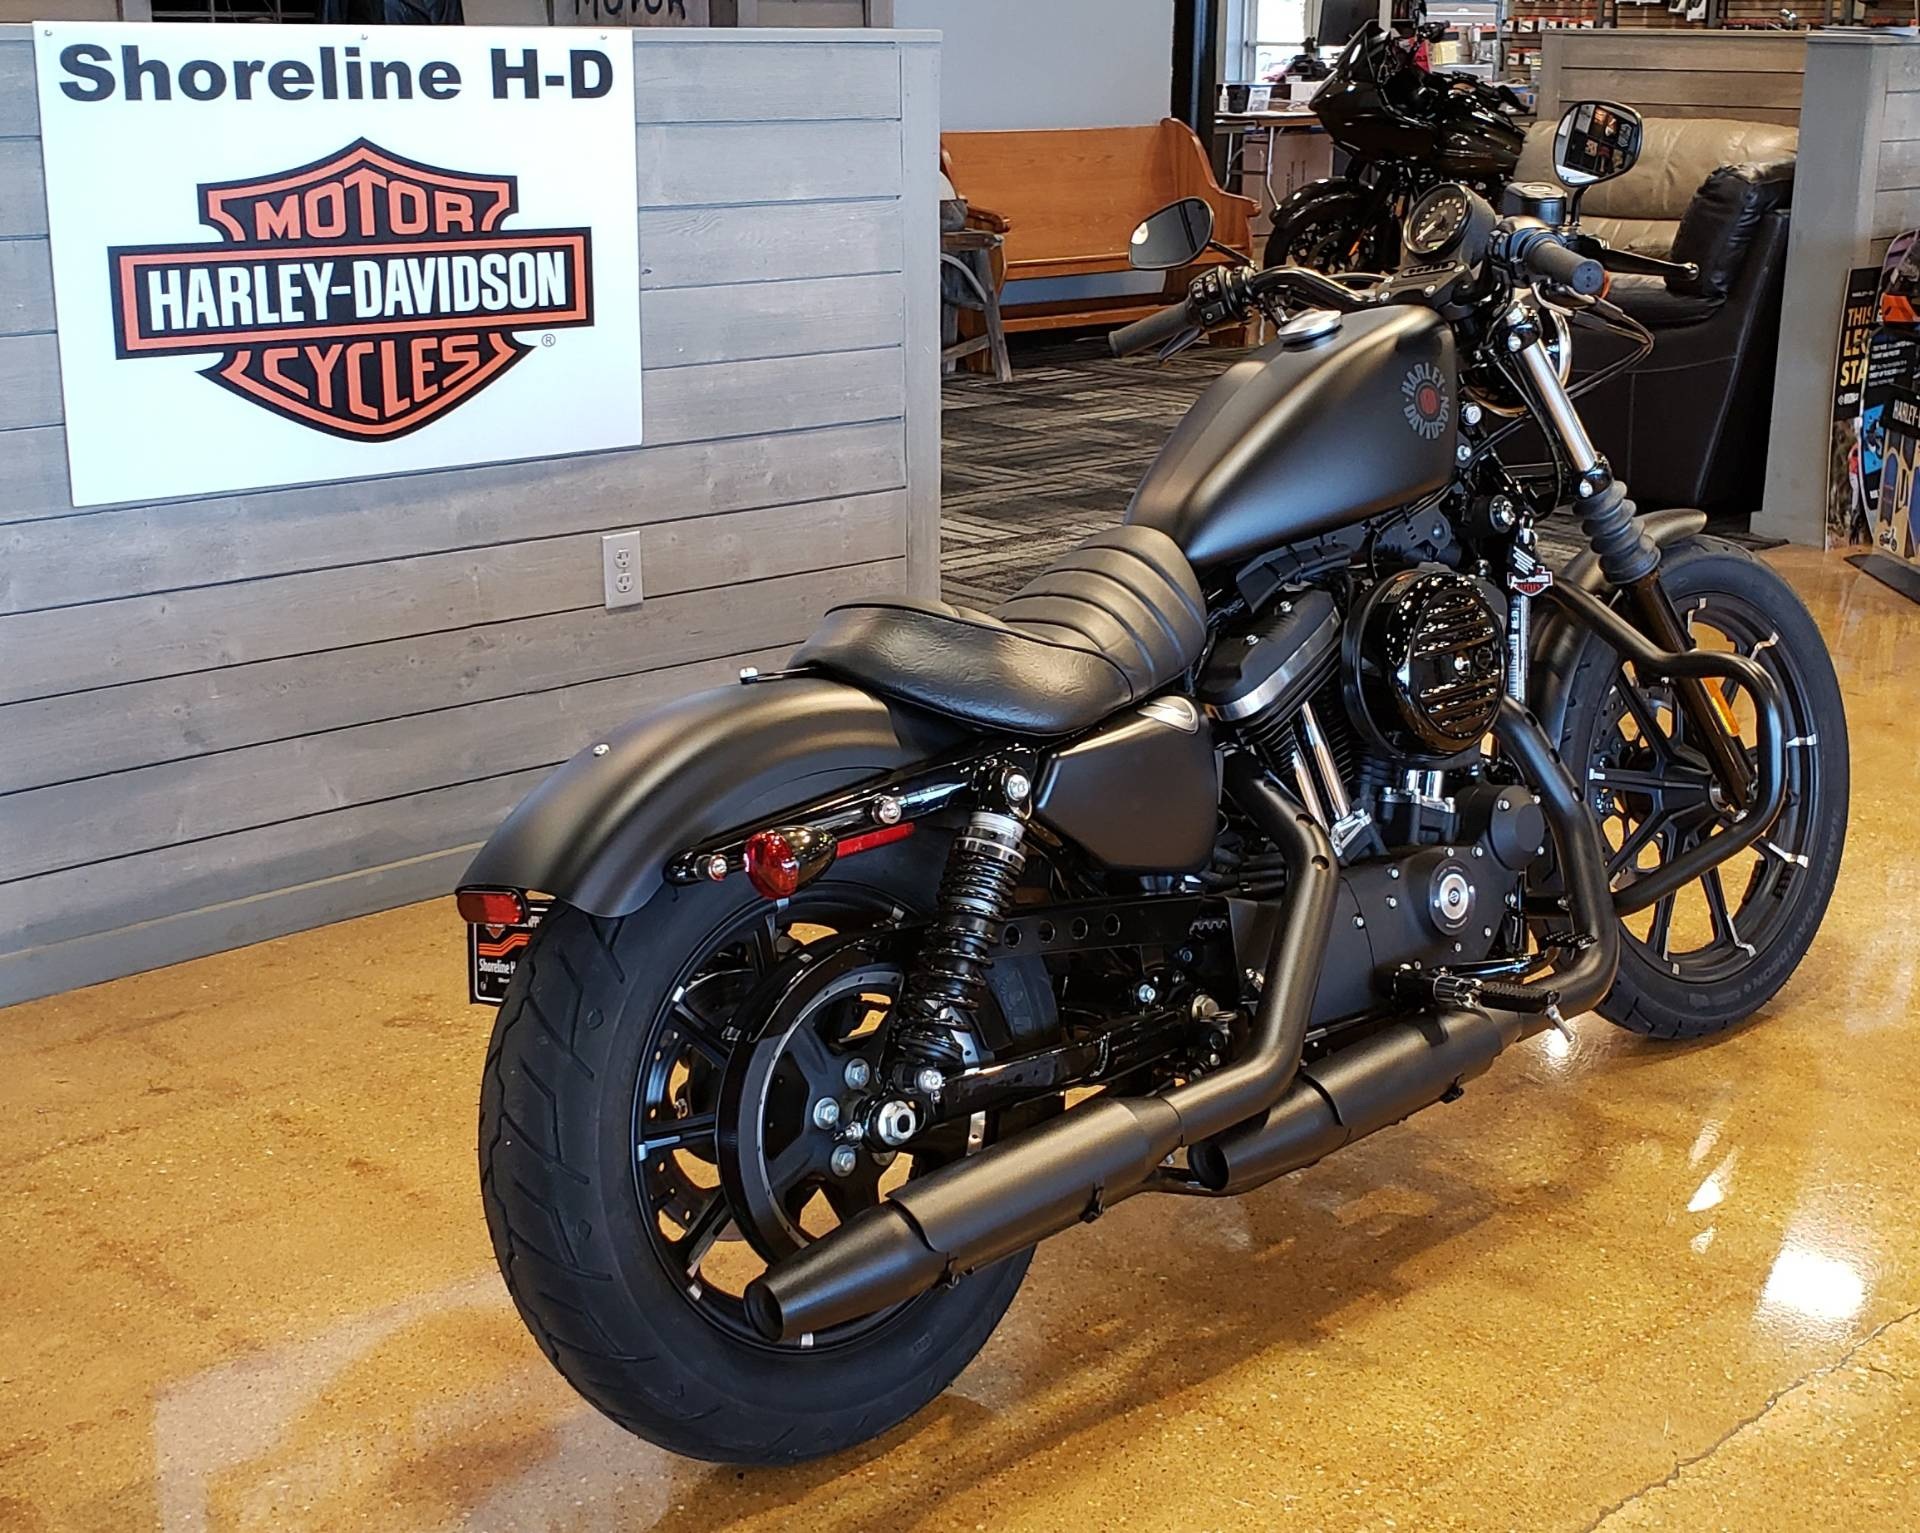 2020 Harley-Davidson IRON 883 in West Long Branch, New Jersey - Photo 8